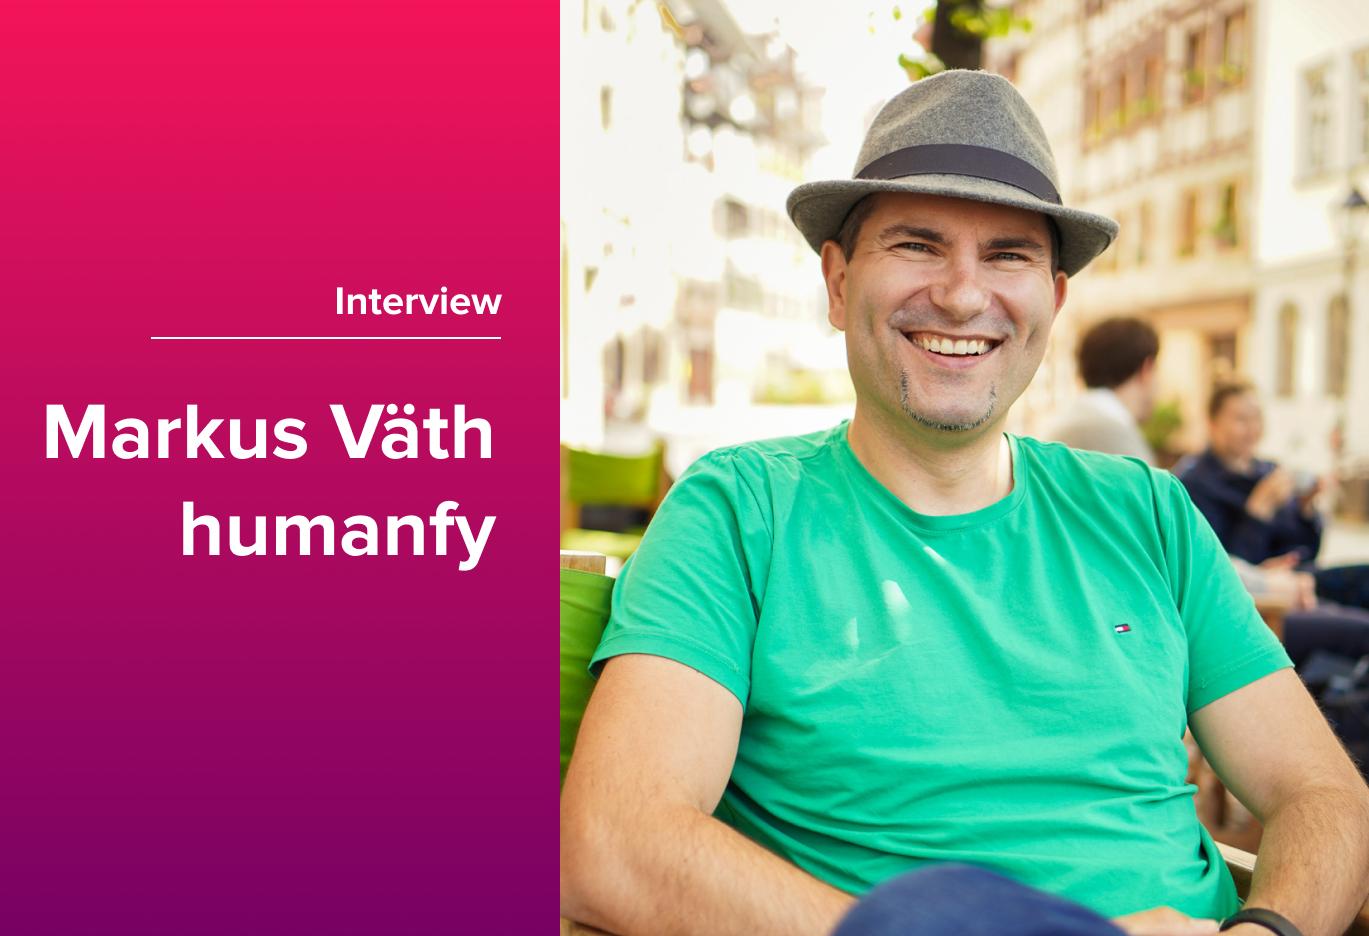 New Work in Our World - Interview with Markus Väth